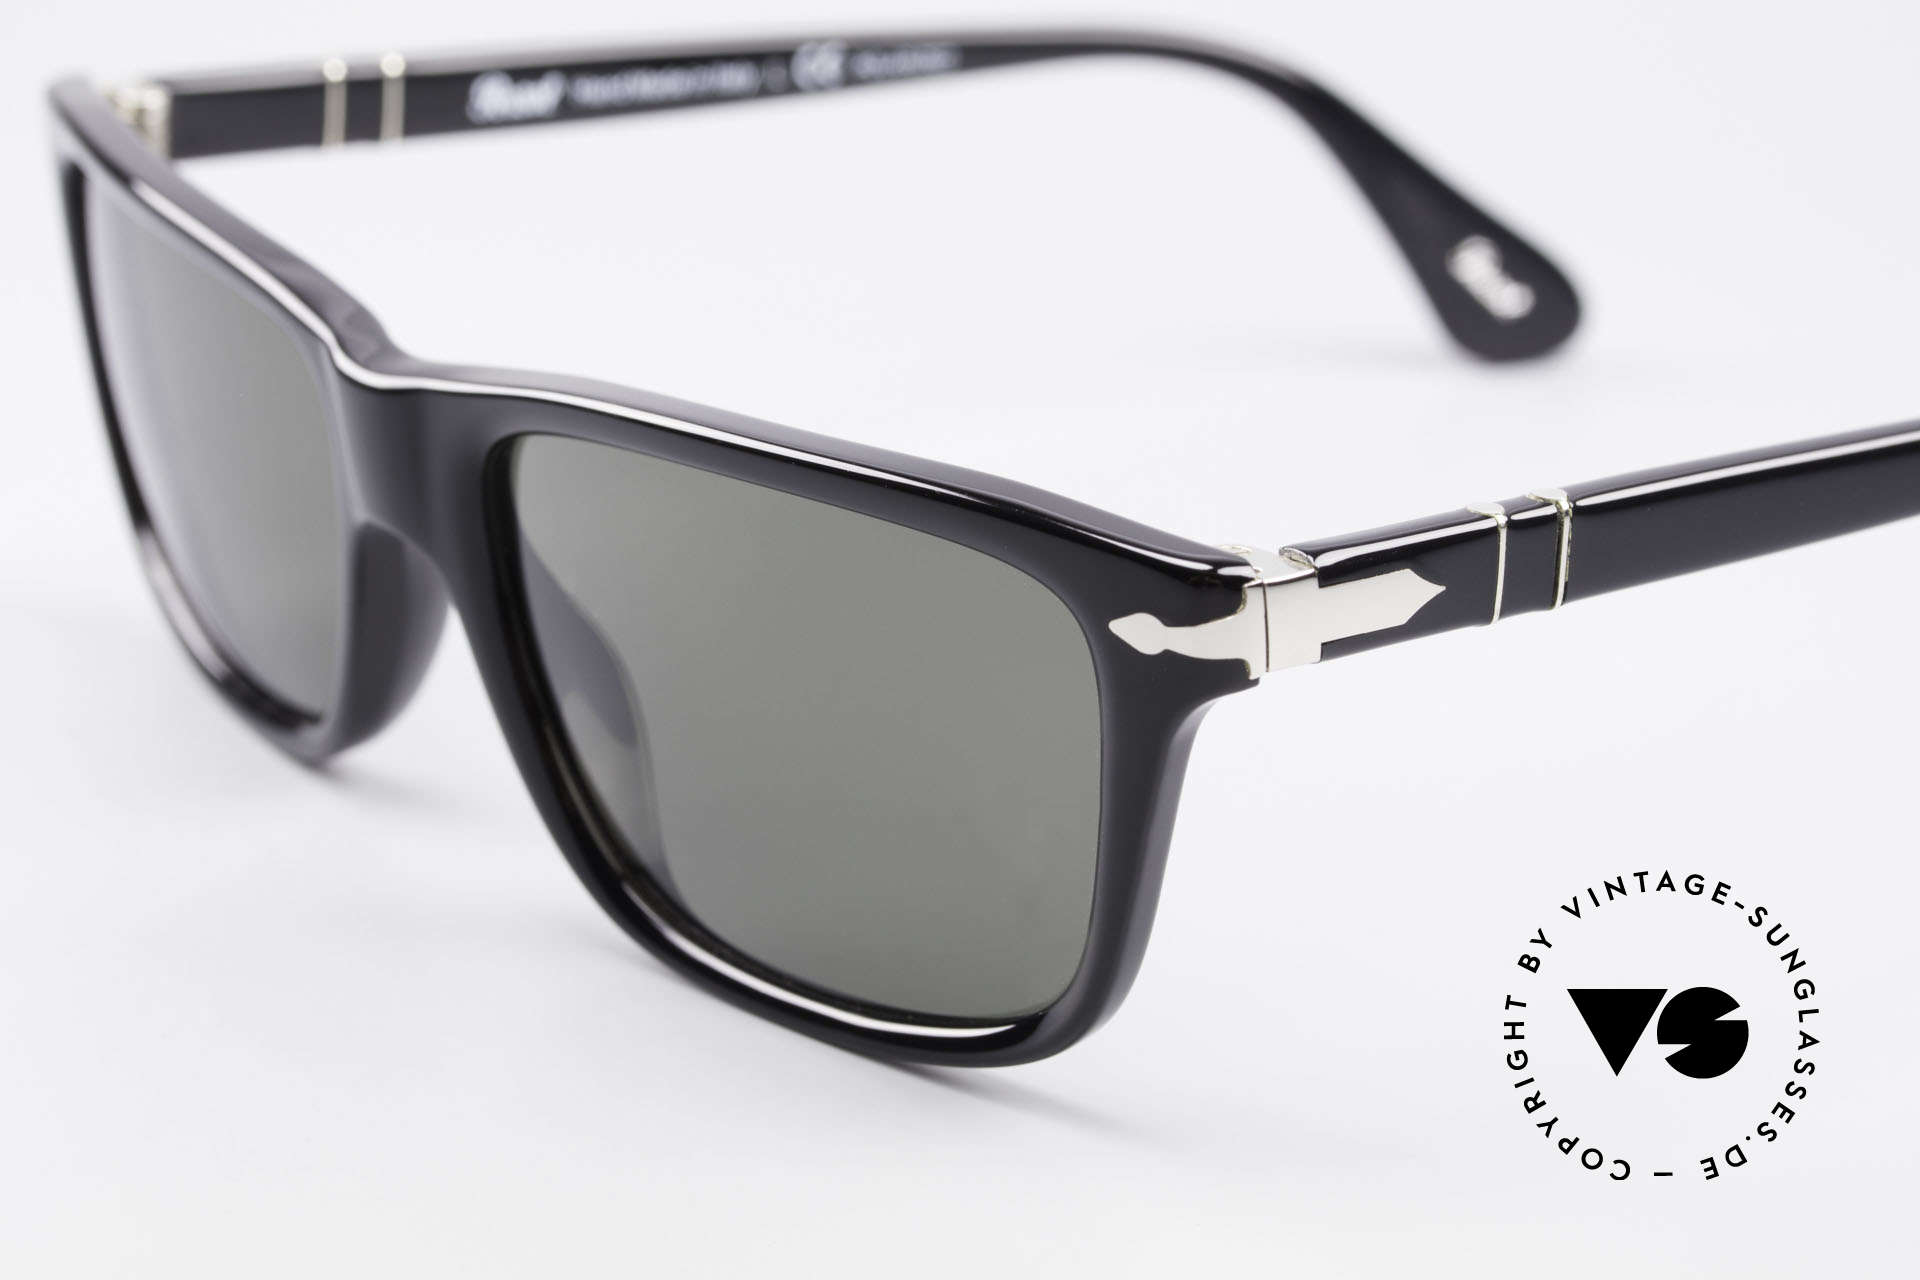 Persol 3026 Classic Sunglasses Polarized, unworn (like all our classic PERSOL sunglasses), Made for Men and Women